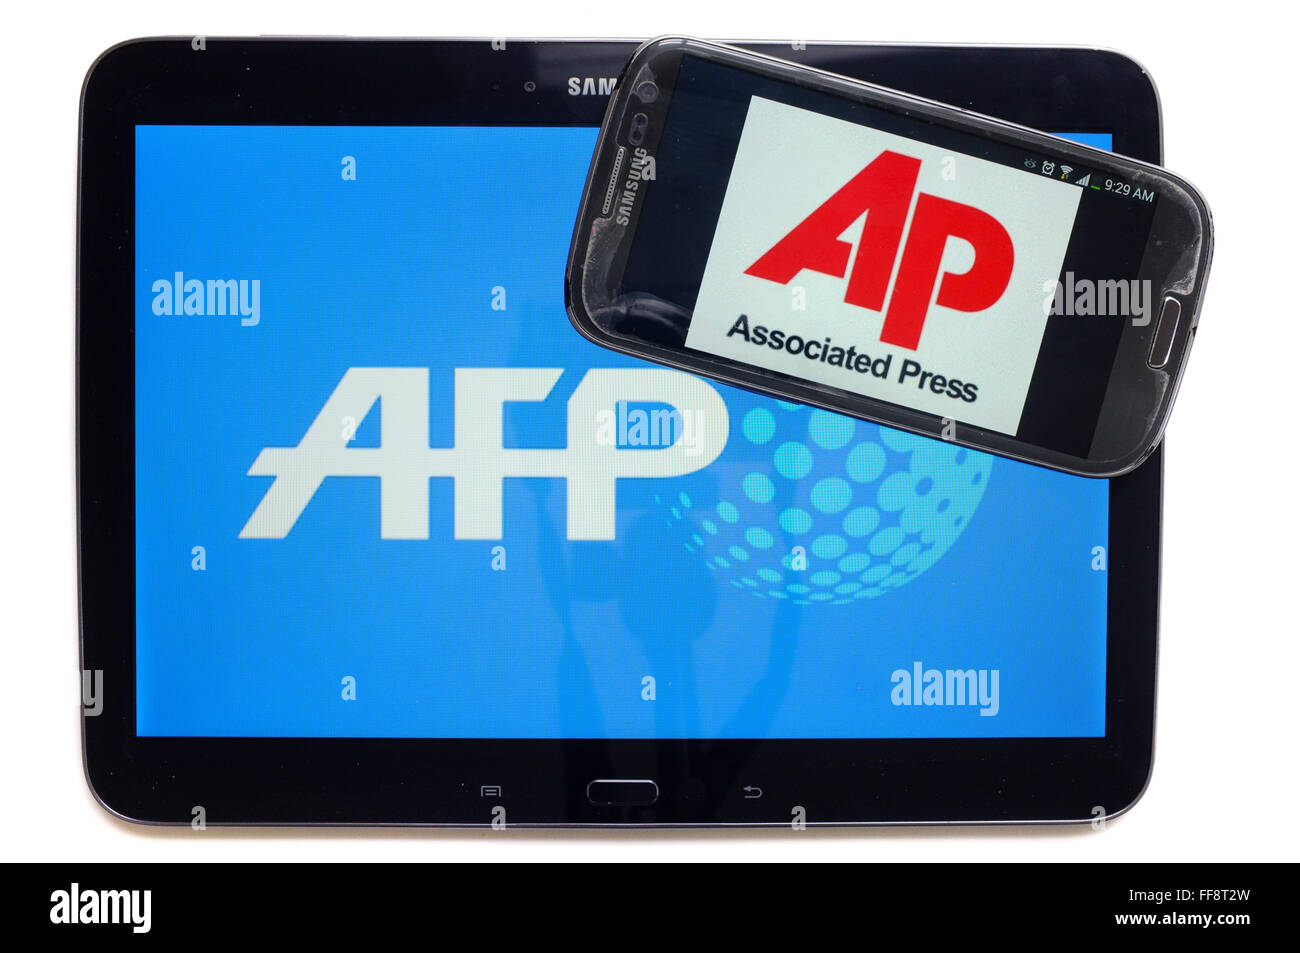 The news agencies AFP and AP on the screens of a tablet and a smartphone photographed against a white background. - Stock Image